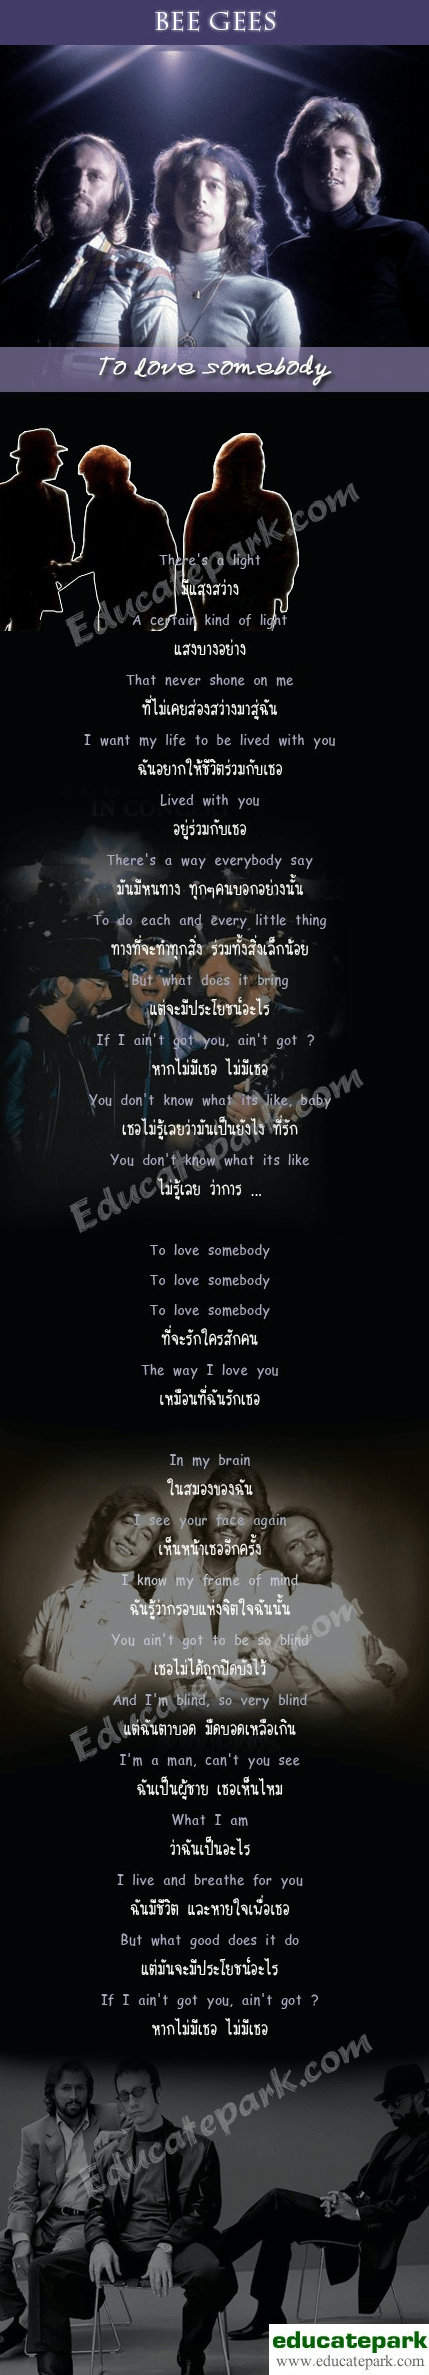 แปลเพลง To Love Somebody - Bee Gees